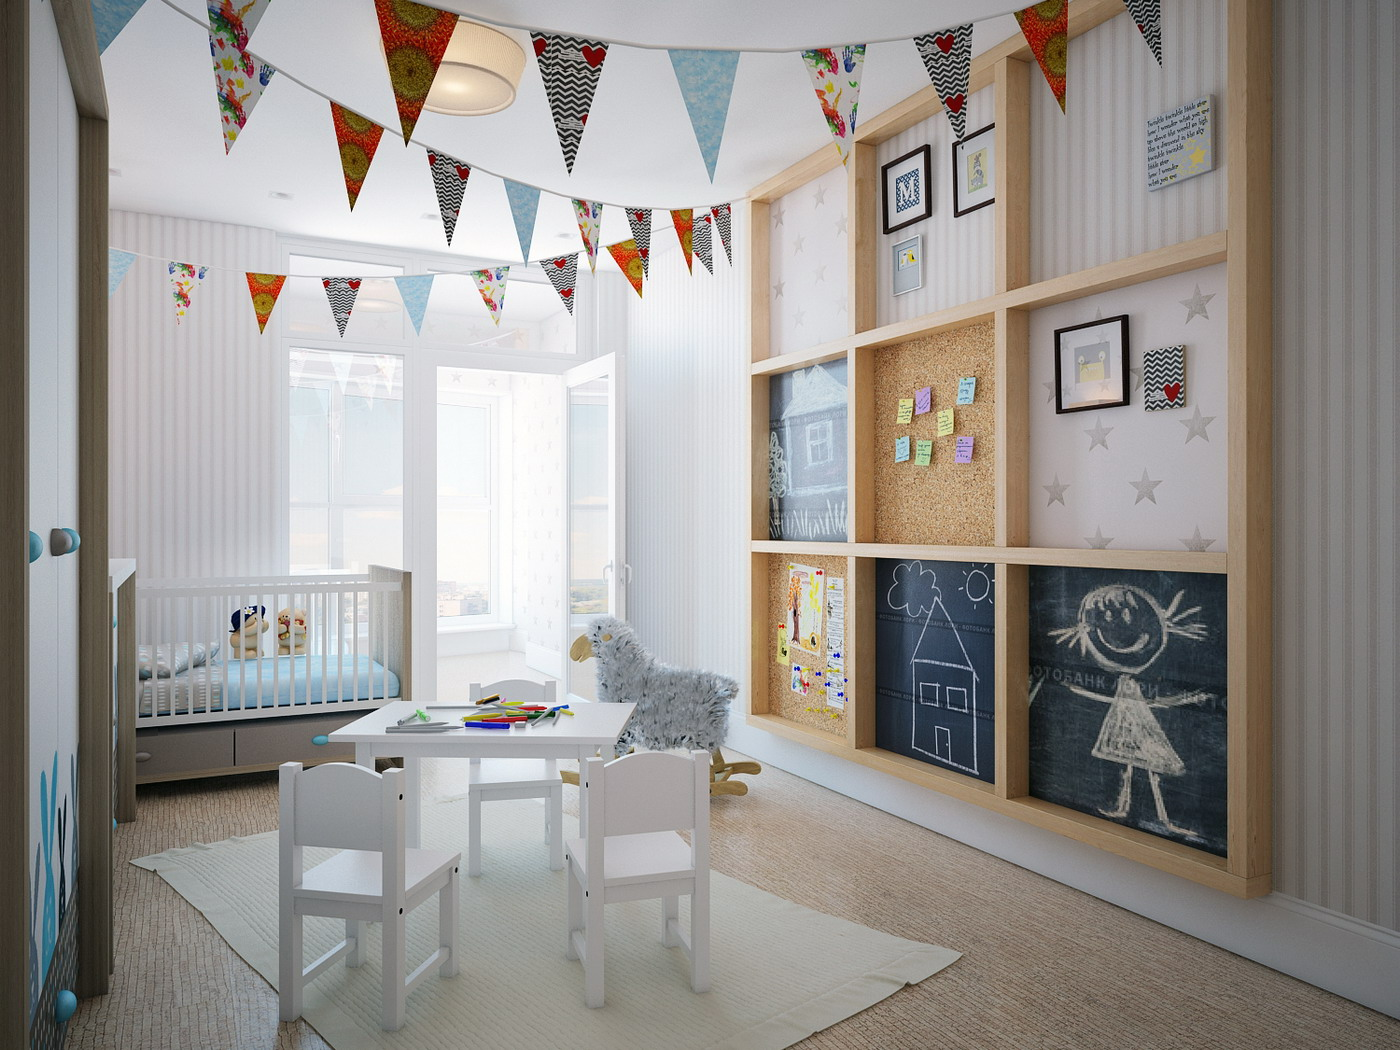 Childstarroom 1